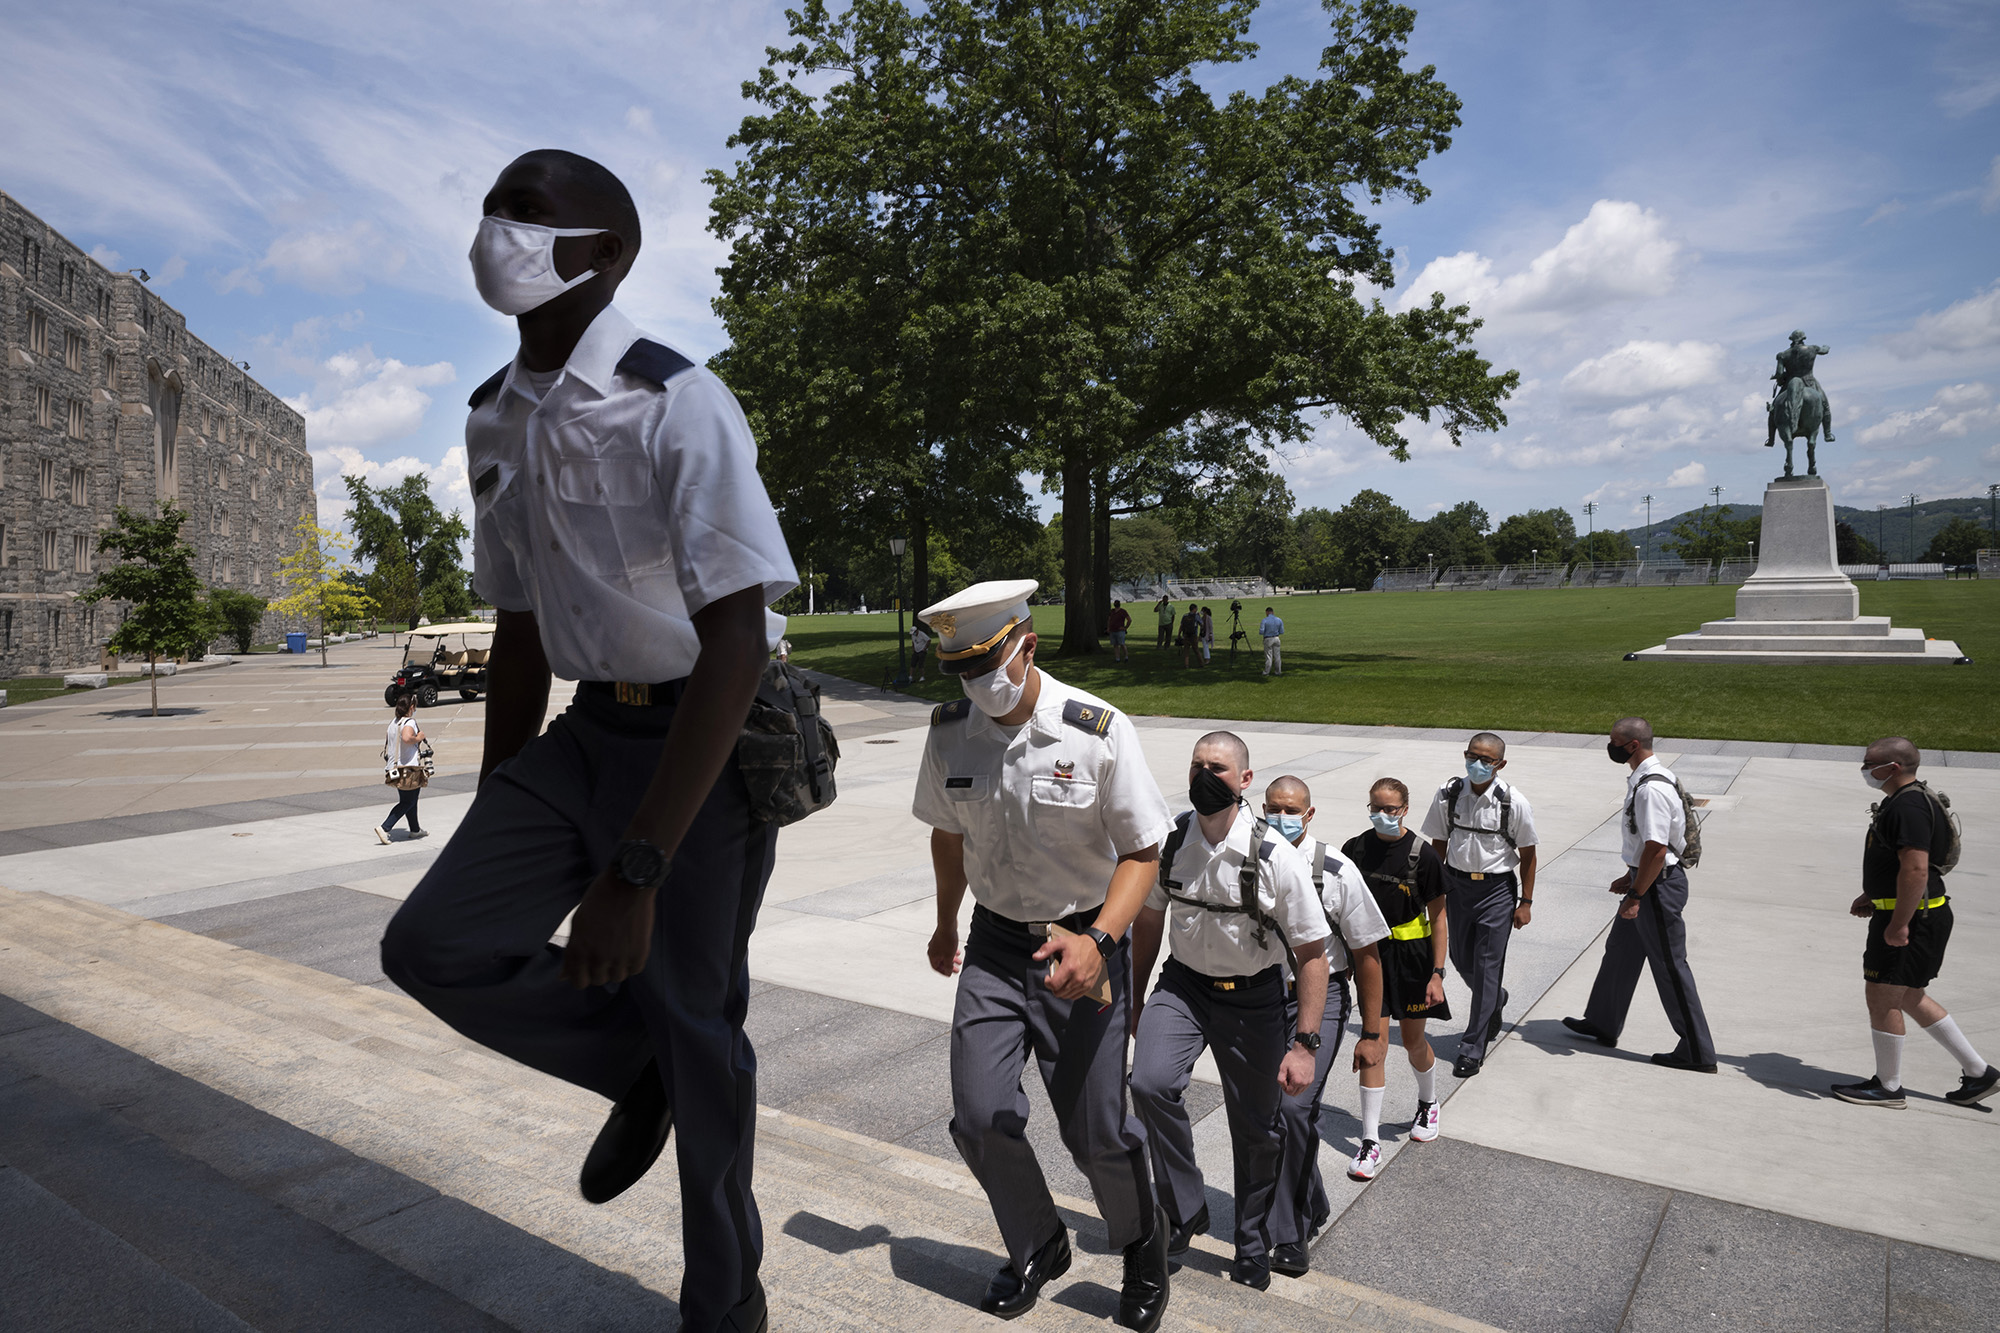 New cadets march in formation on July 13, 2020, at the U.S. Military Academy in West Point, N.Y. The Army is welcoming more than 1,200 candidates from every state. Candidates will be tested for COVID-19 immediately upon arrival, wear masks, and practice social distancing. (Mark Lennihan/AP)